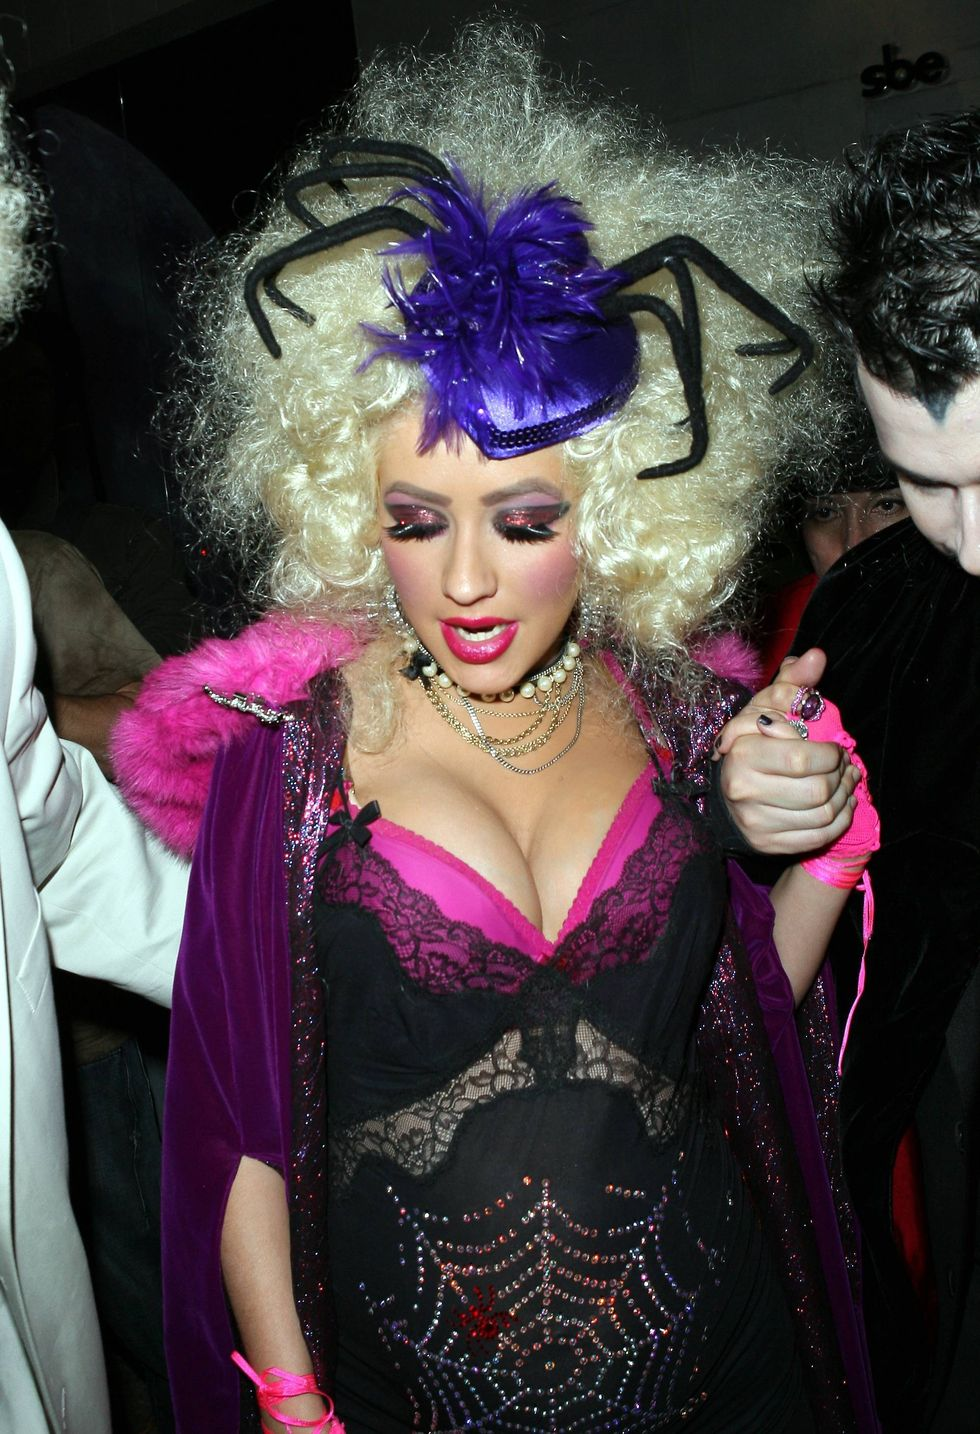 christina-aguilera-shows-cleavage-at-club-hyde-at-halloween-party-01